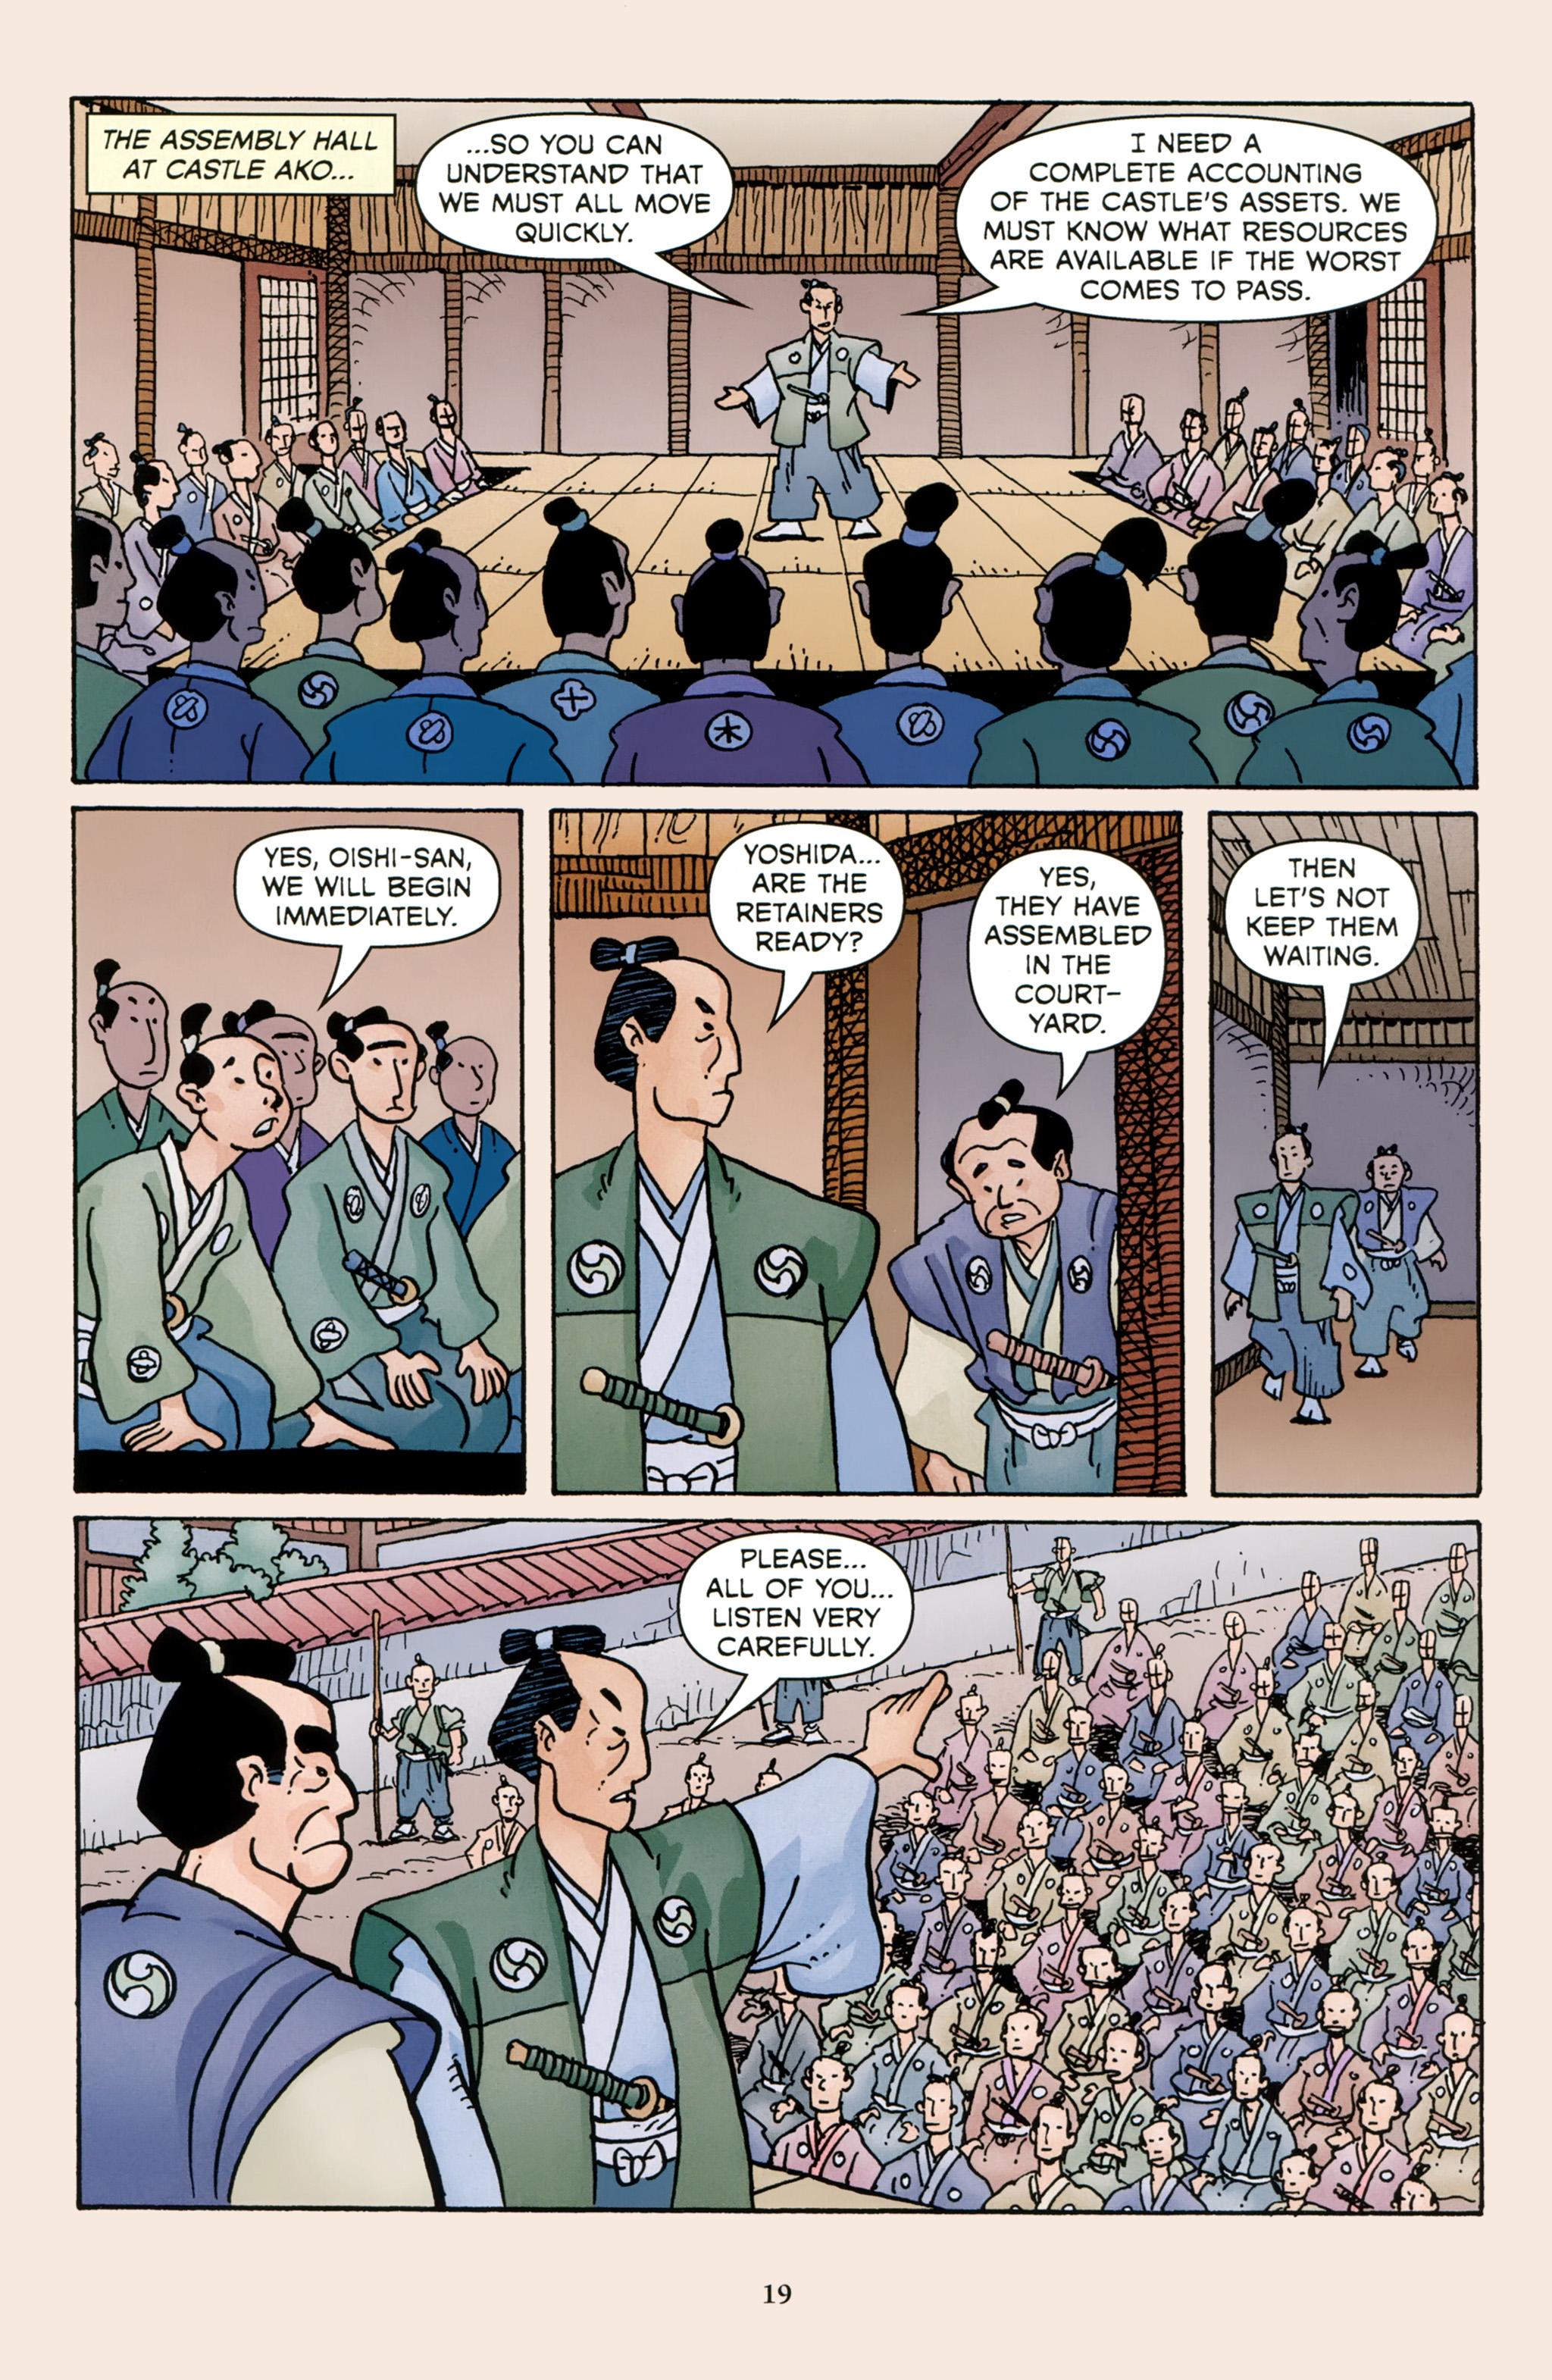 47 Ronin #2 - Read 47 Ronin Issue #2 Page 21